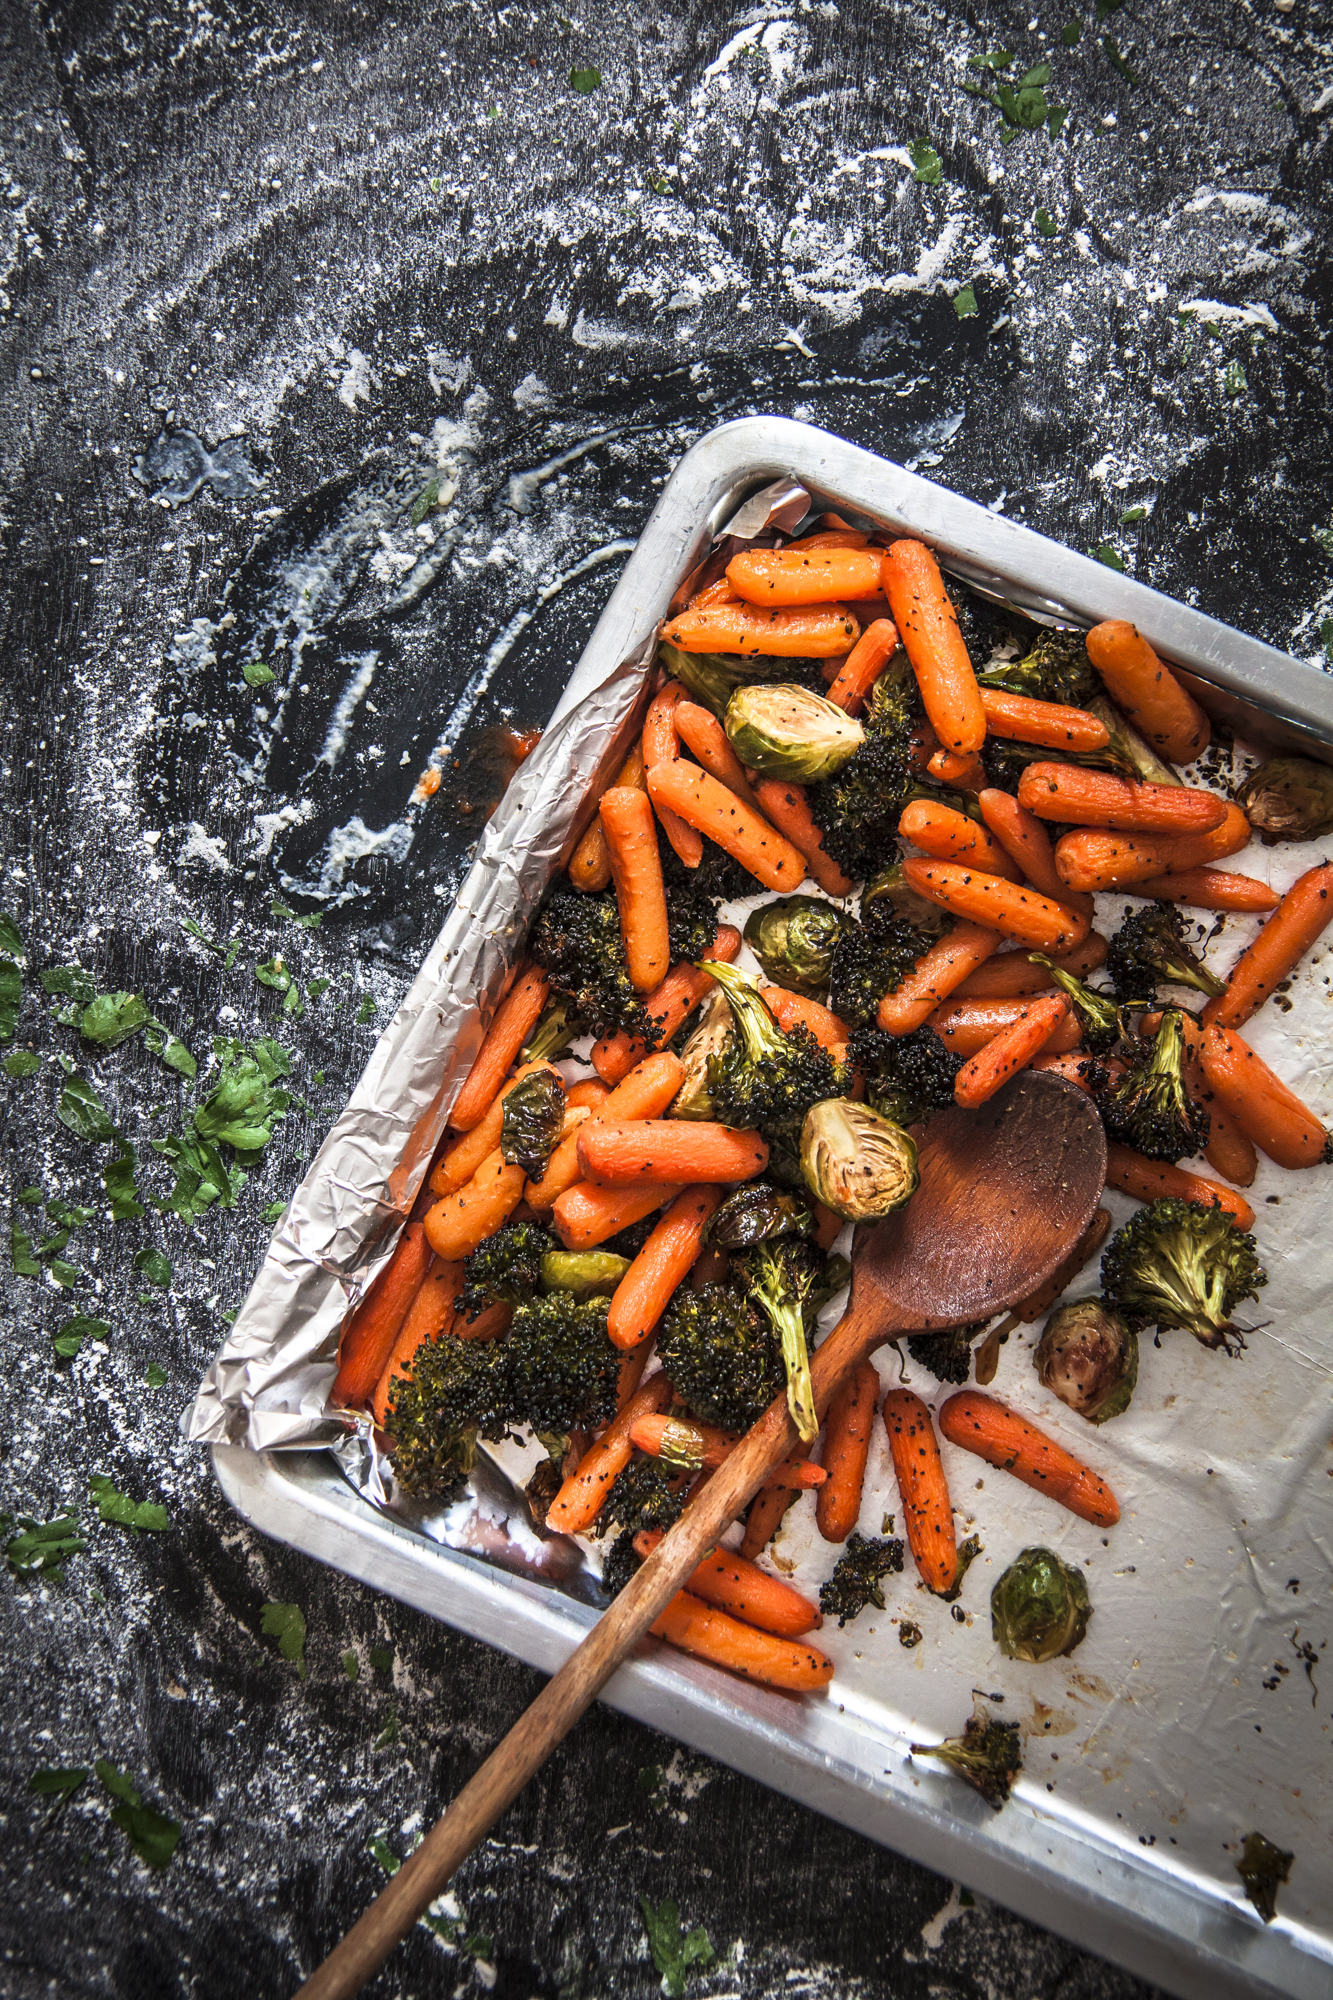 Oven Roasted Carrots and Broccoli - Flavor Quotient